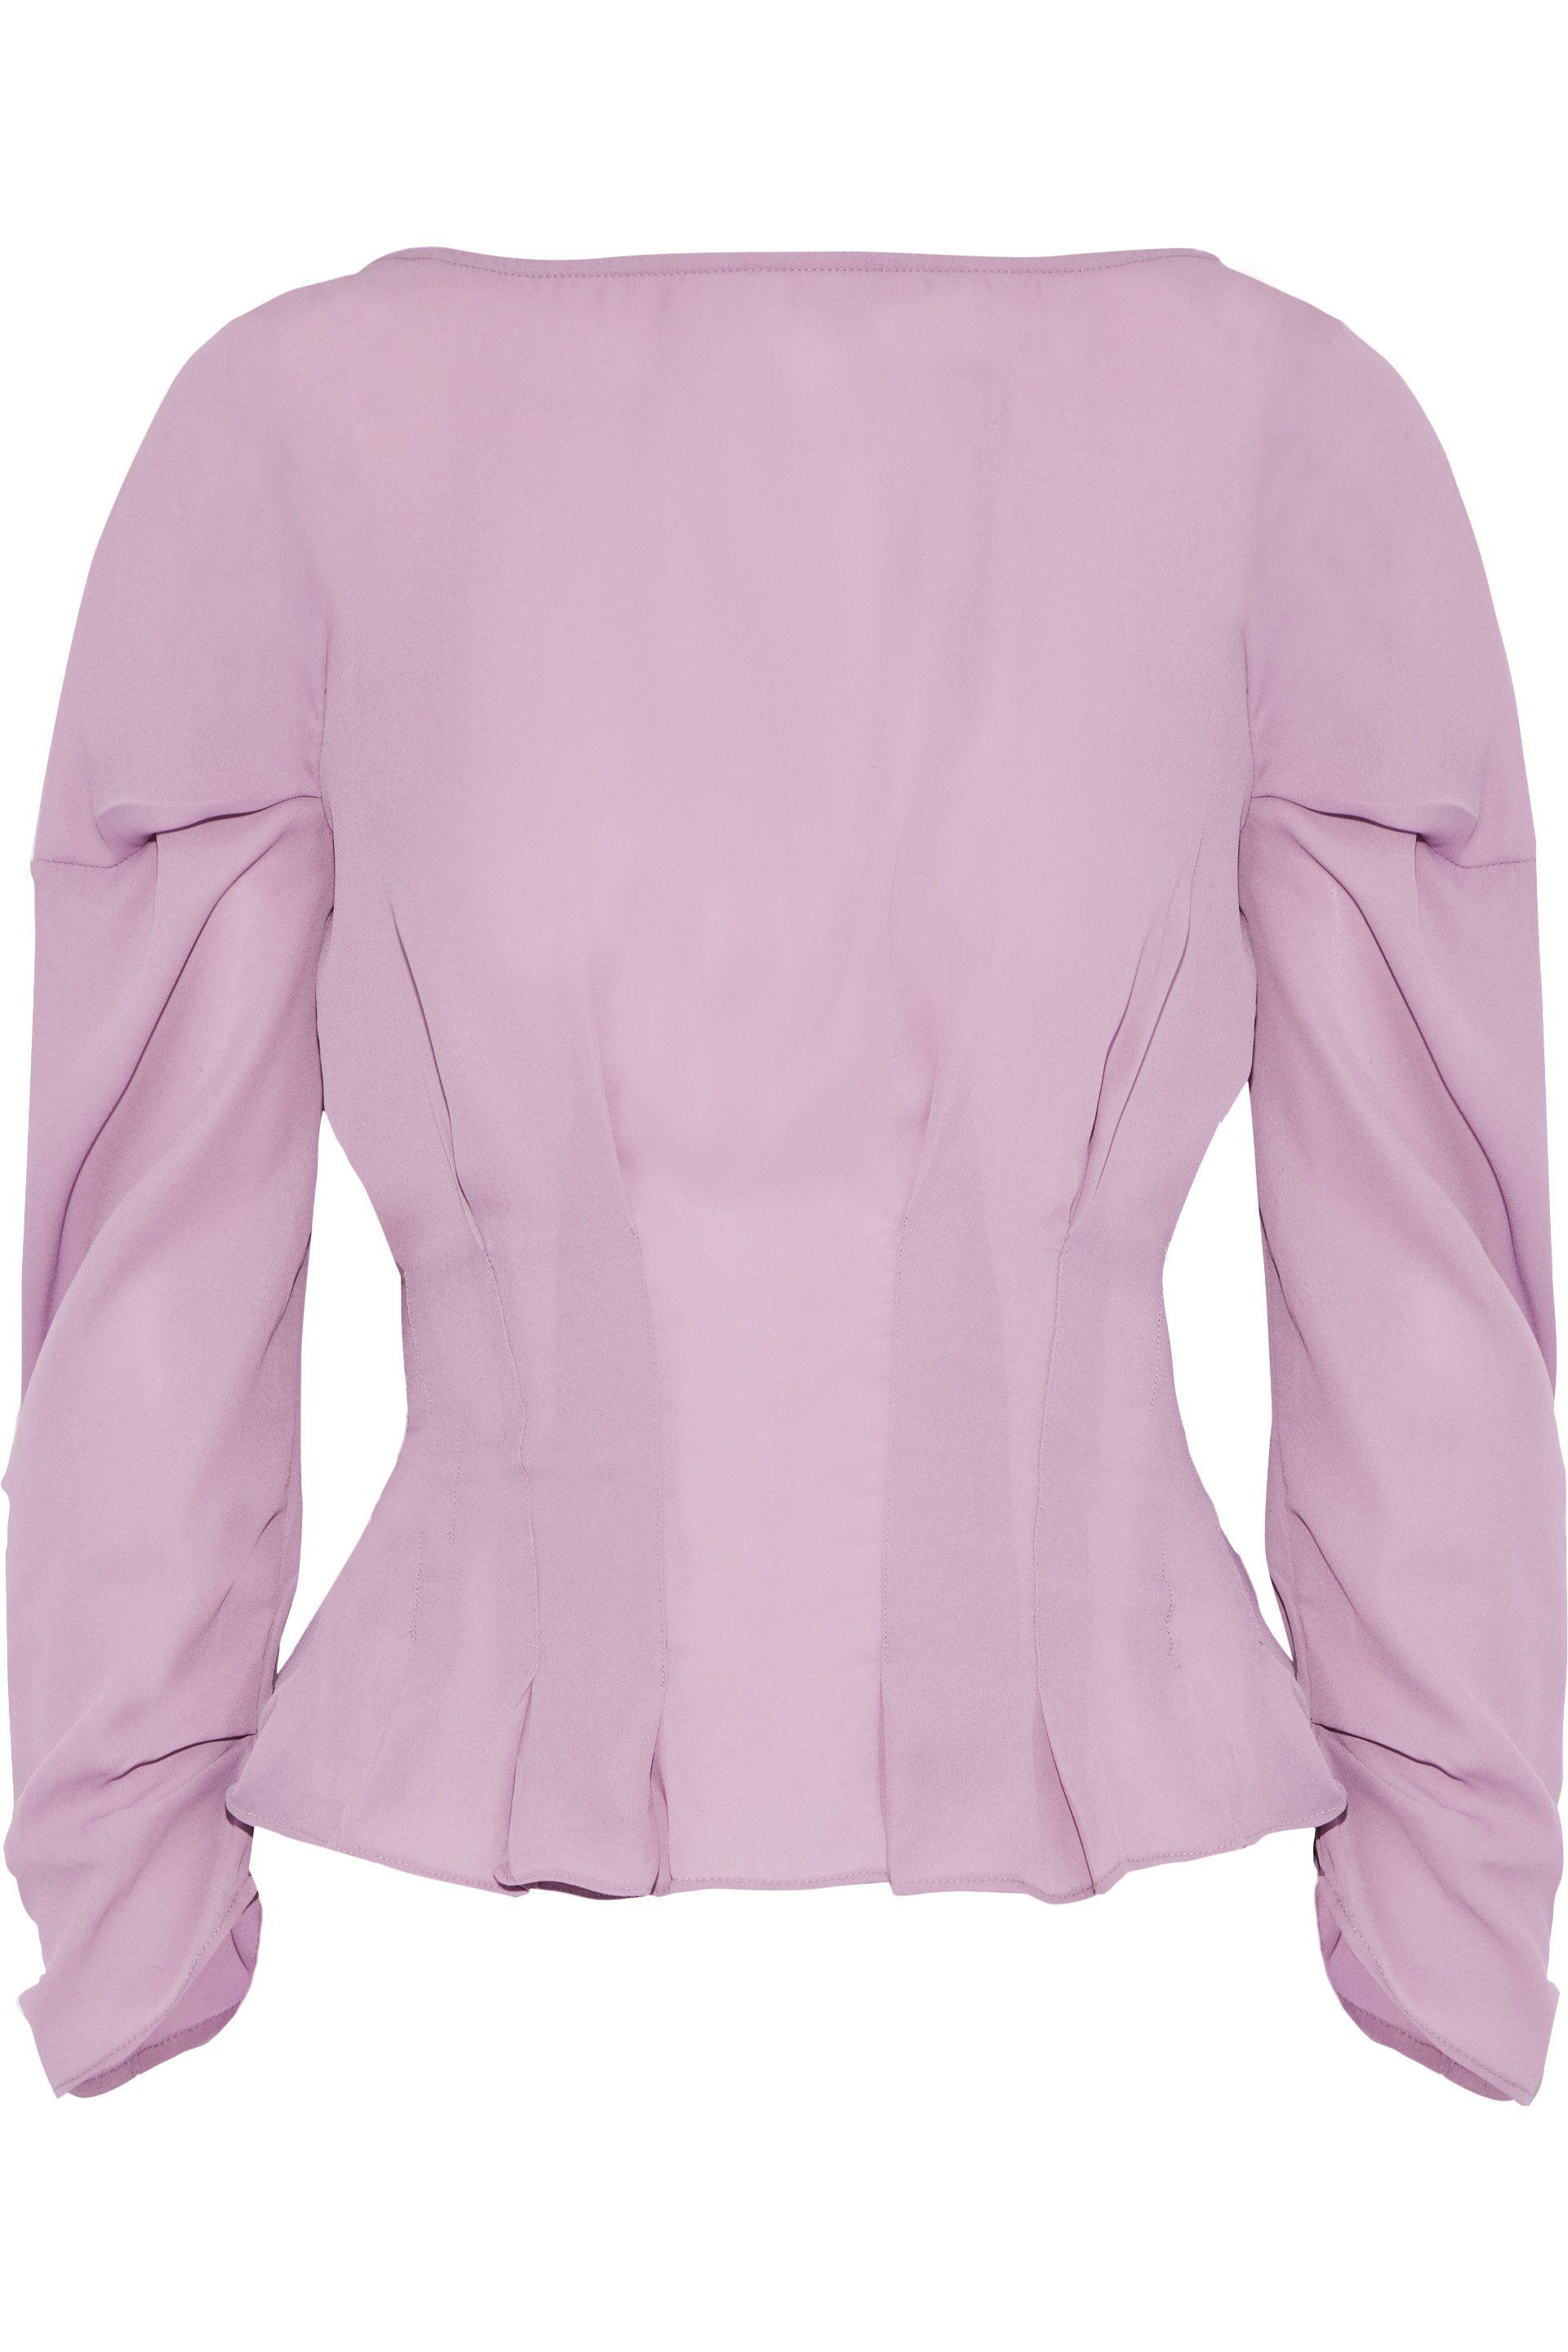 c8866d77c8976f Lyst - W118 by Walter Baker Woman Lizzie Pleated Crepe De Chine Top ...